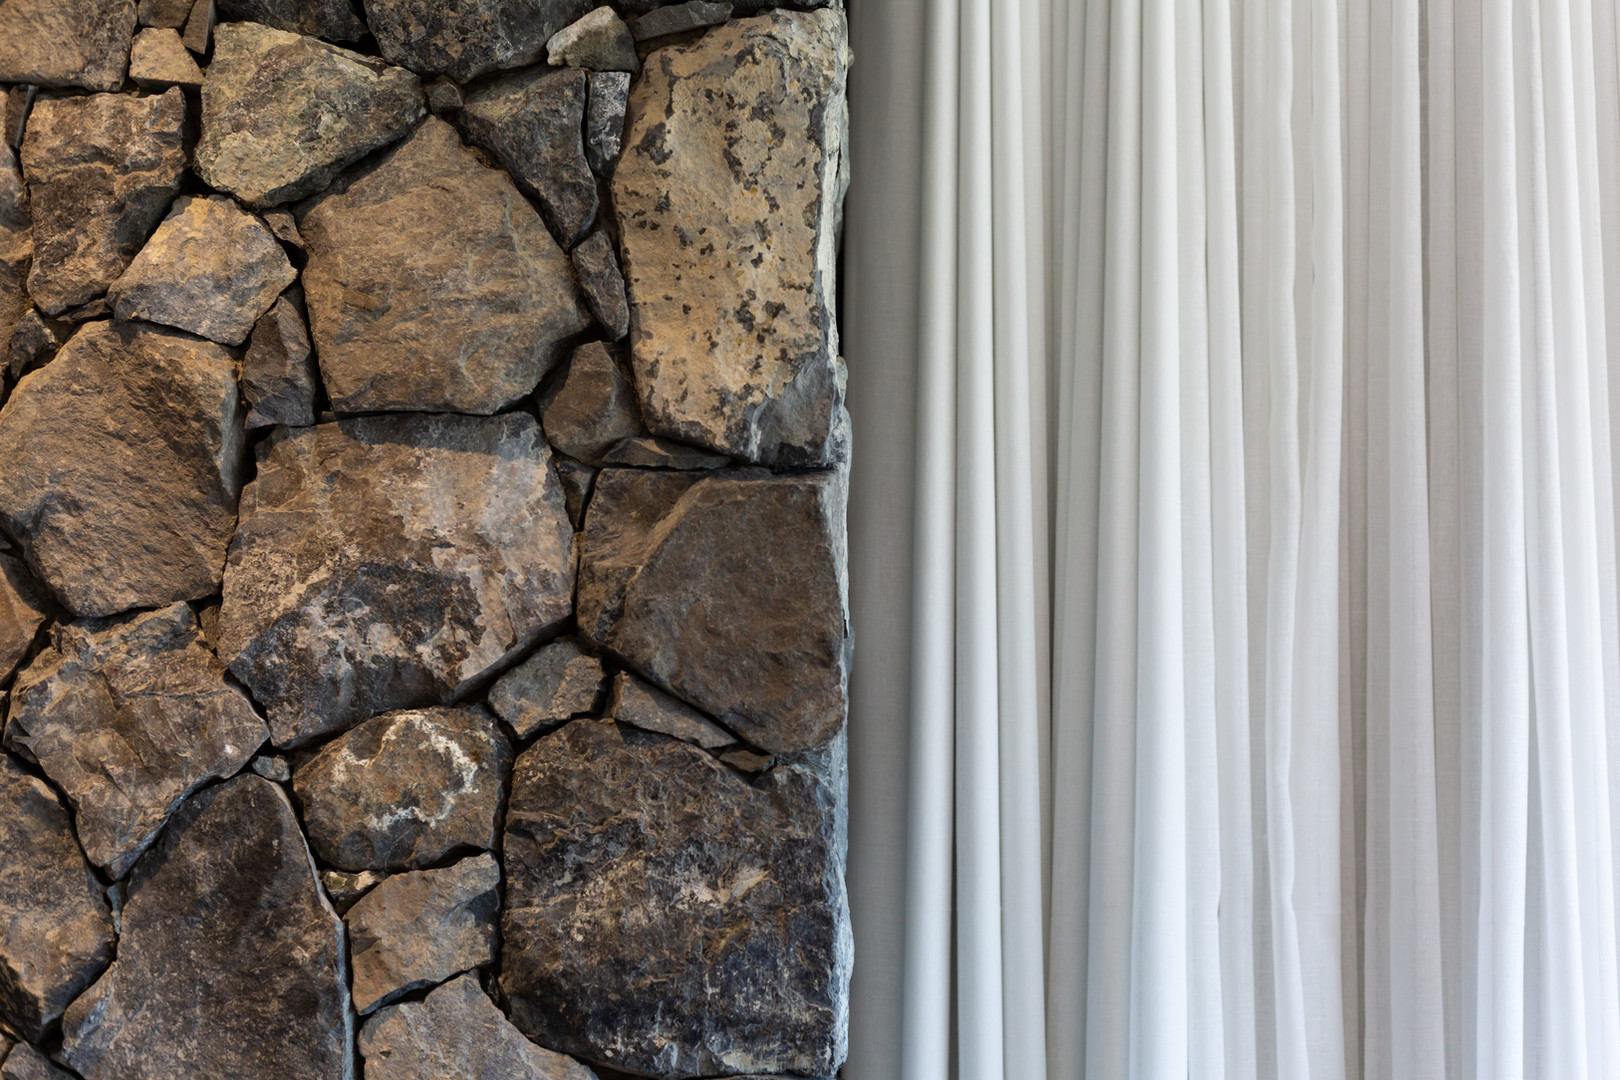 Interior rock wall and curtains